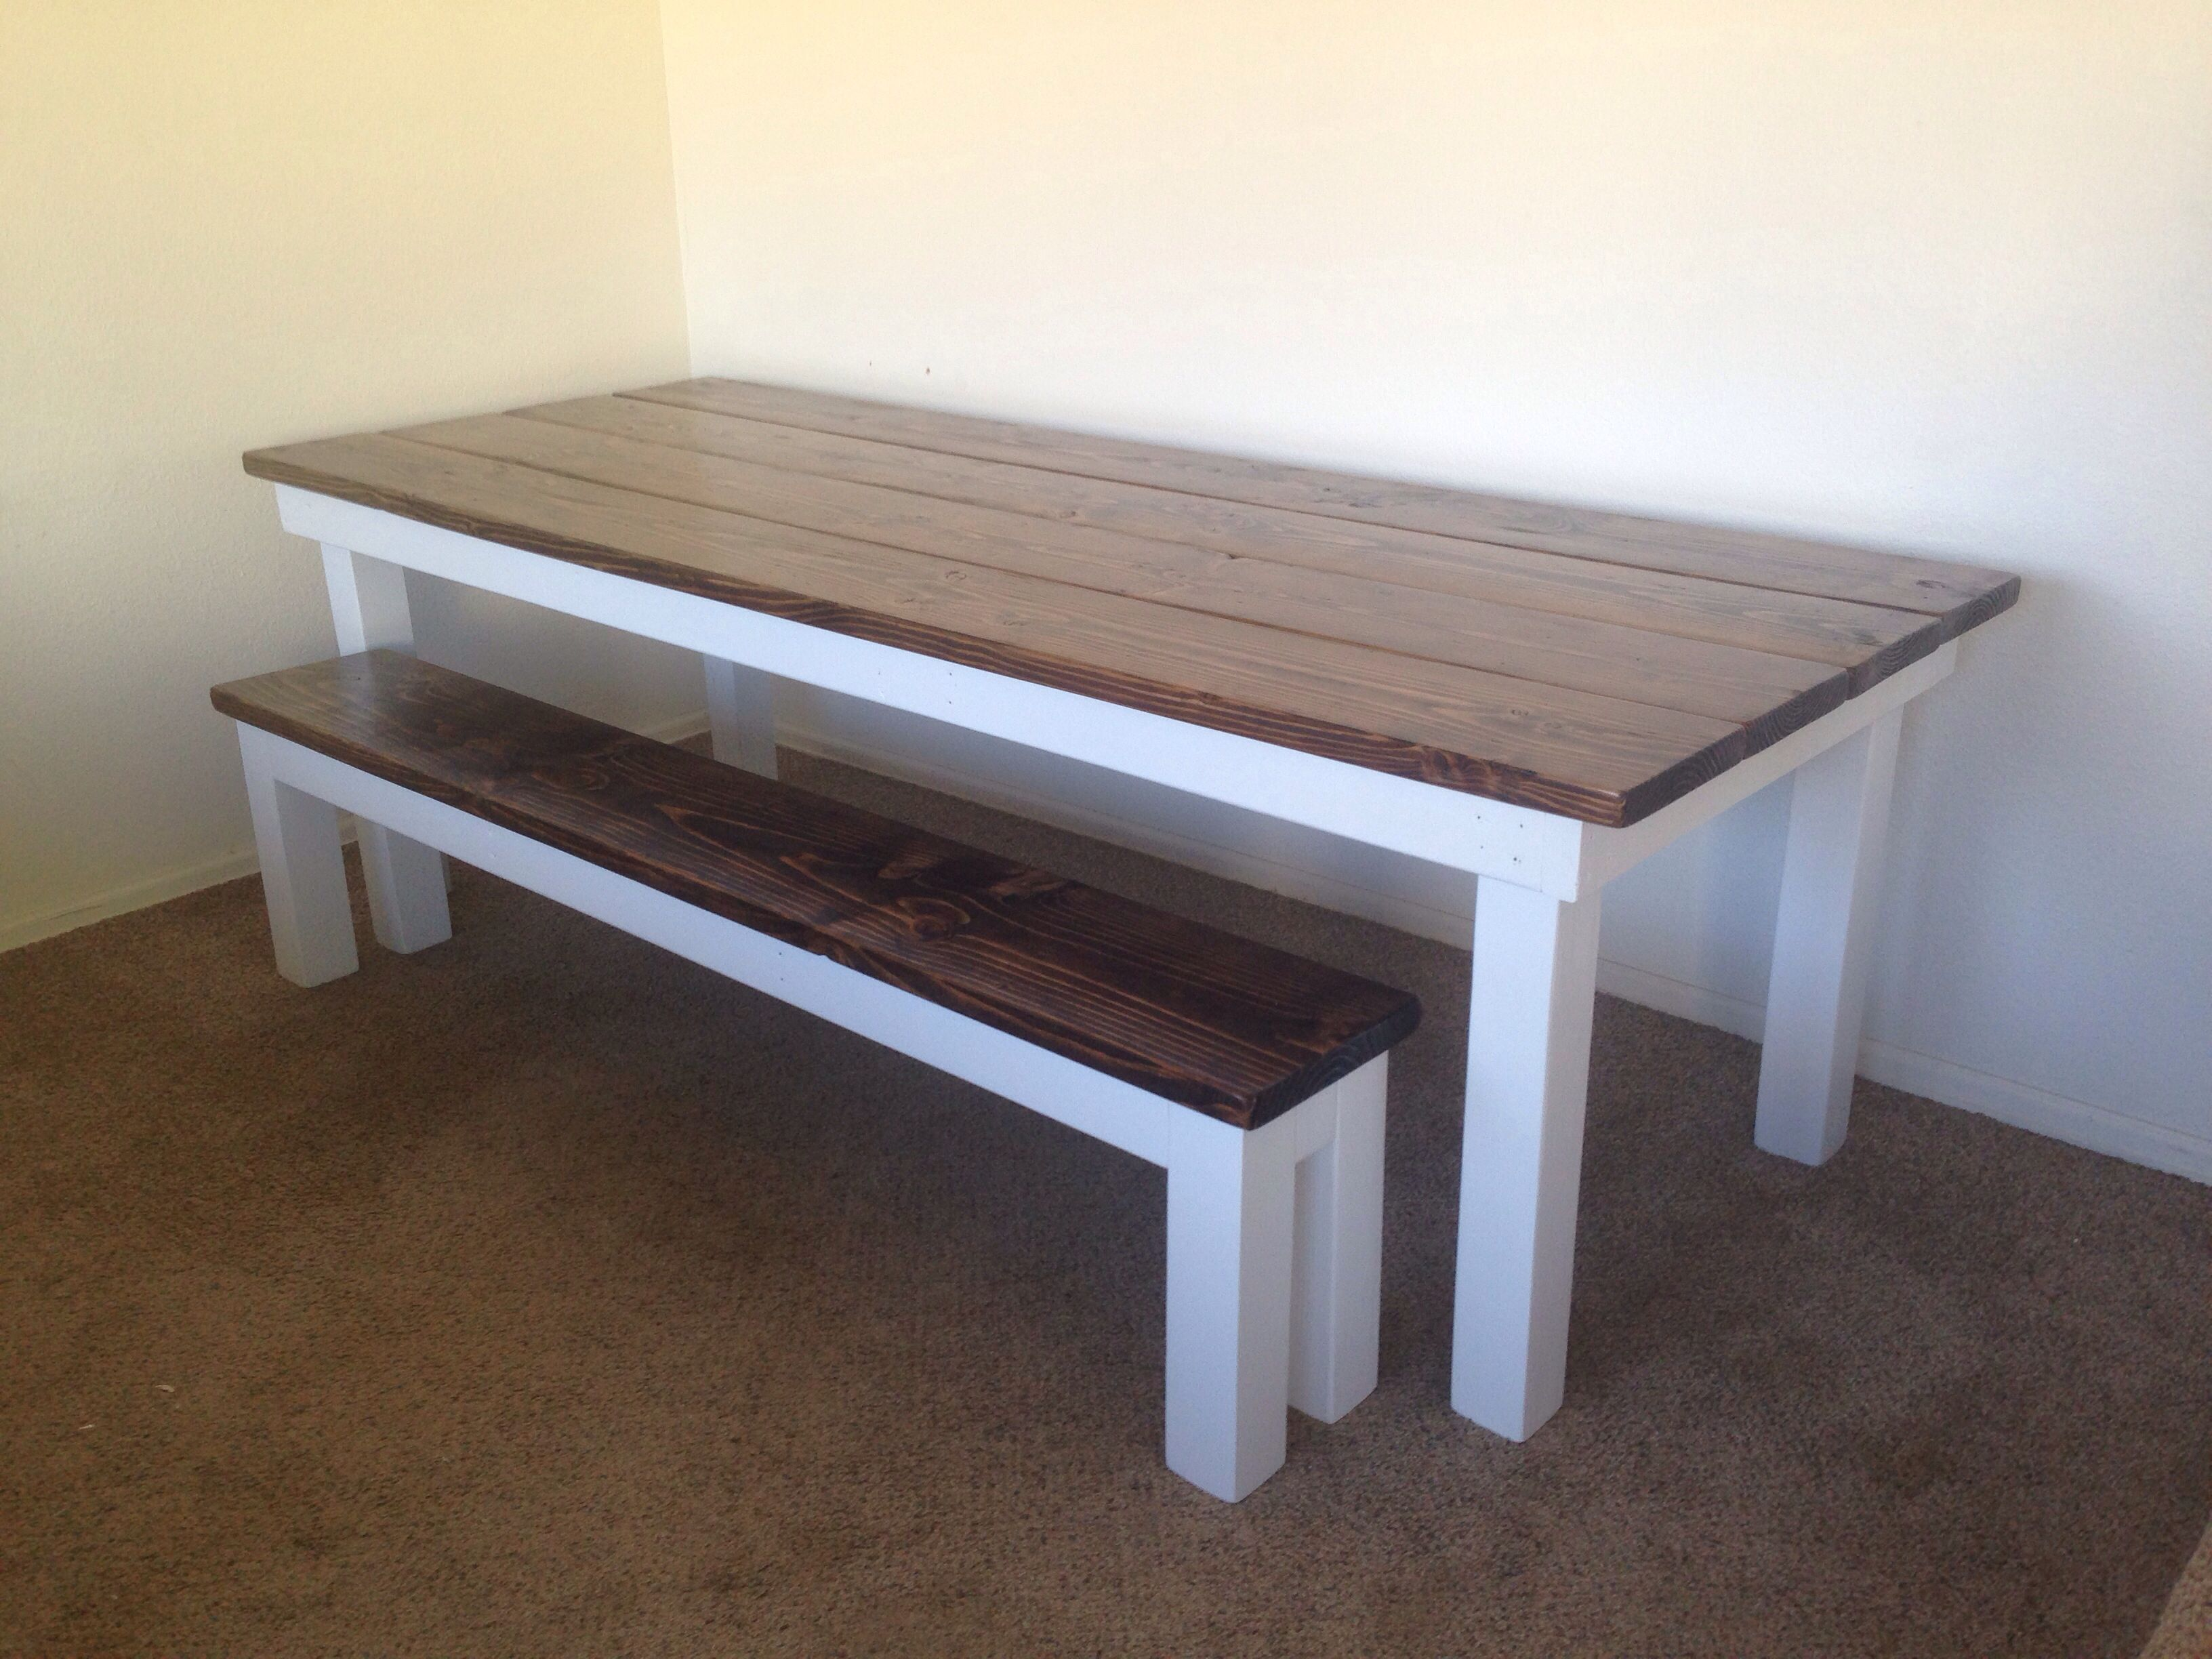 Good Custom Planked Top Farmhouse Table With Dark Walnut Stain And White Base.  Visit Http